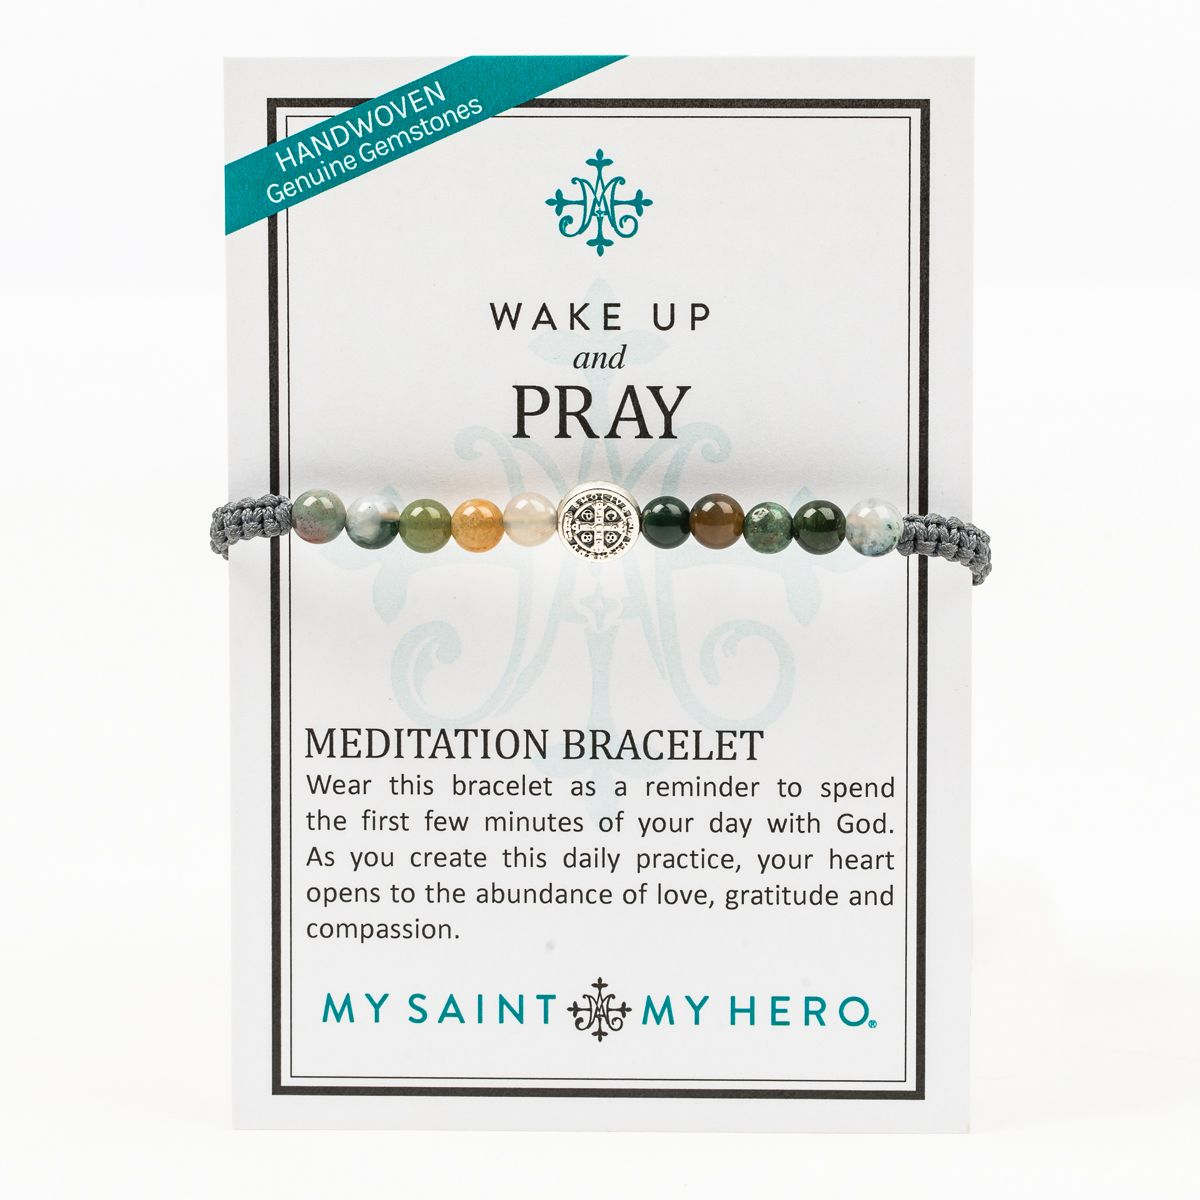 My Saint My Hero Wake Up and Pray Bracelet